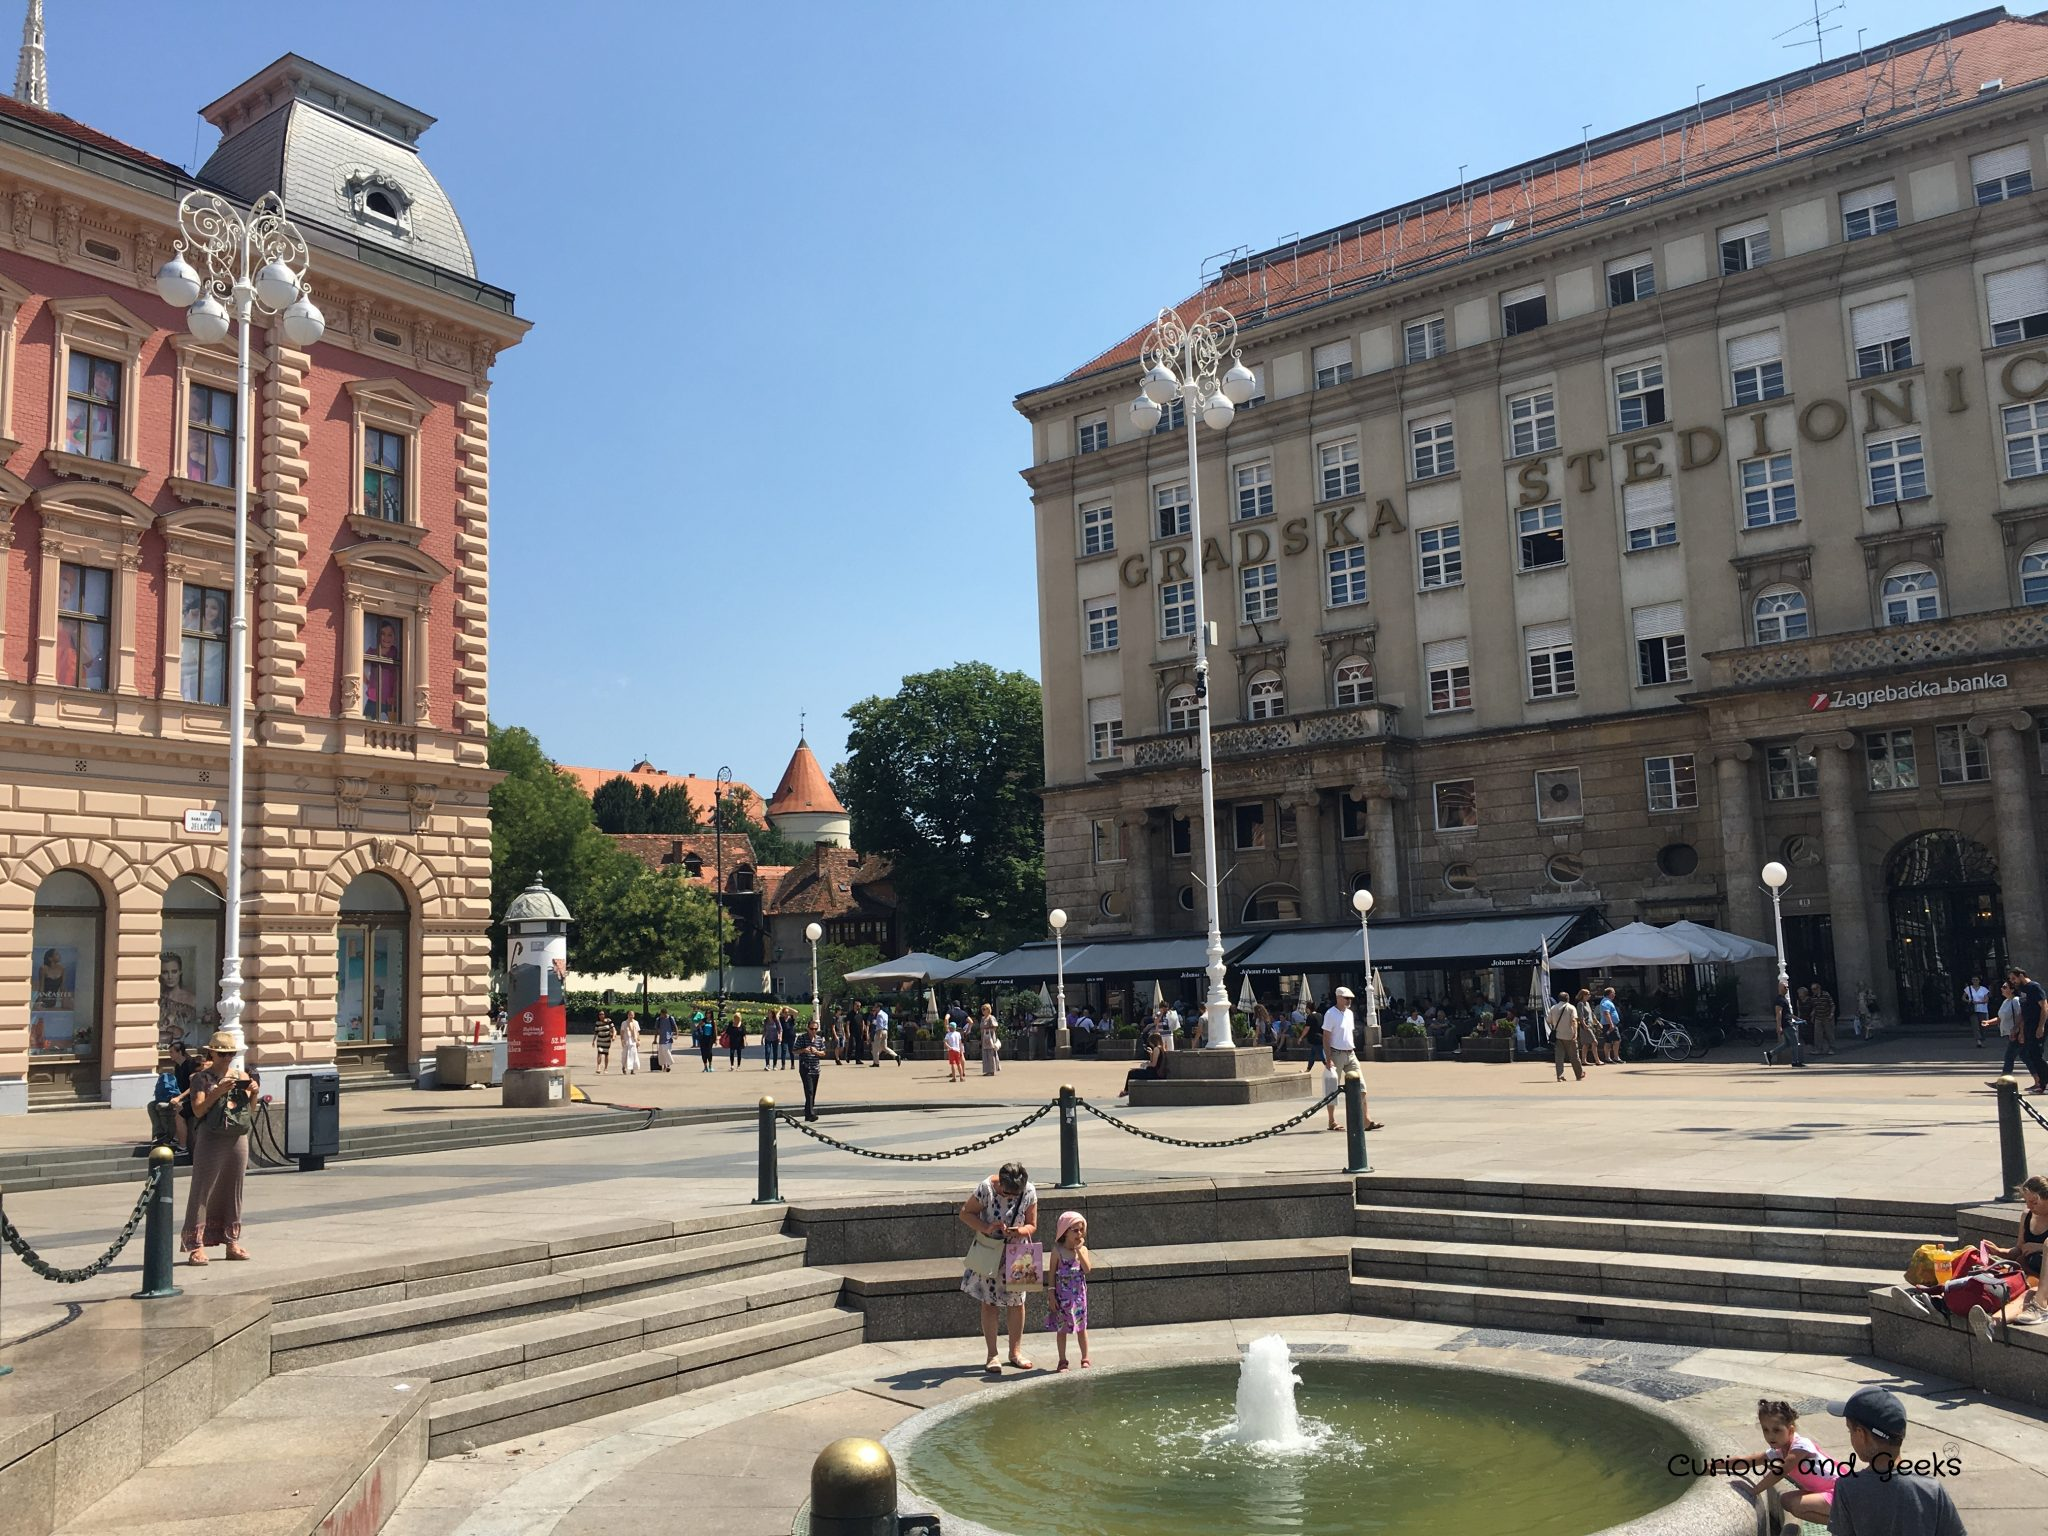 Zagreb - A fontain in the main square